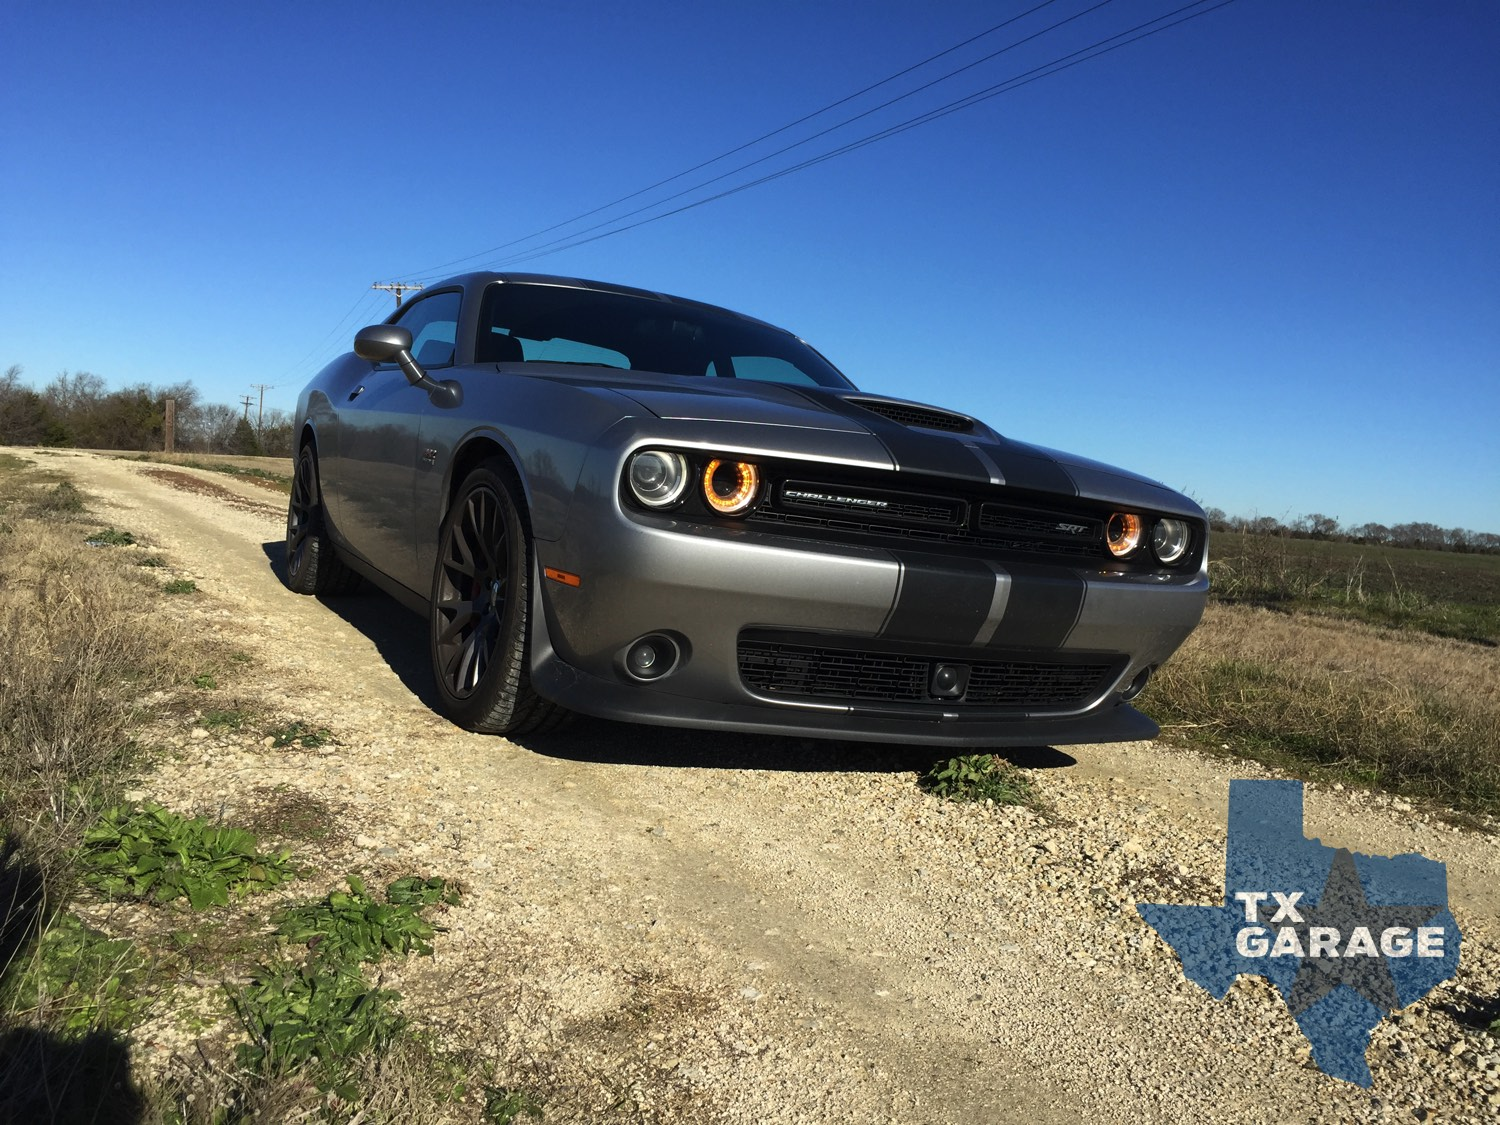 The 2015 Dodge Challenger SRT 392